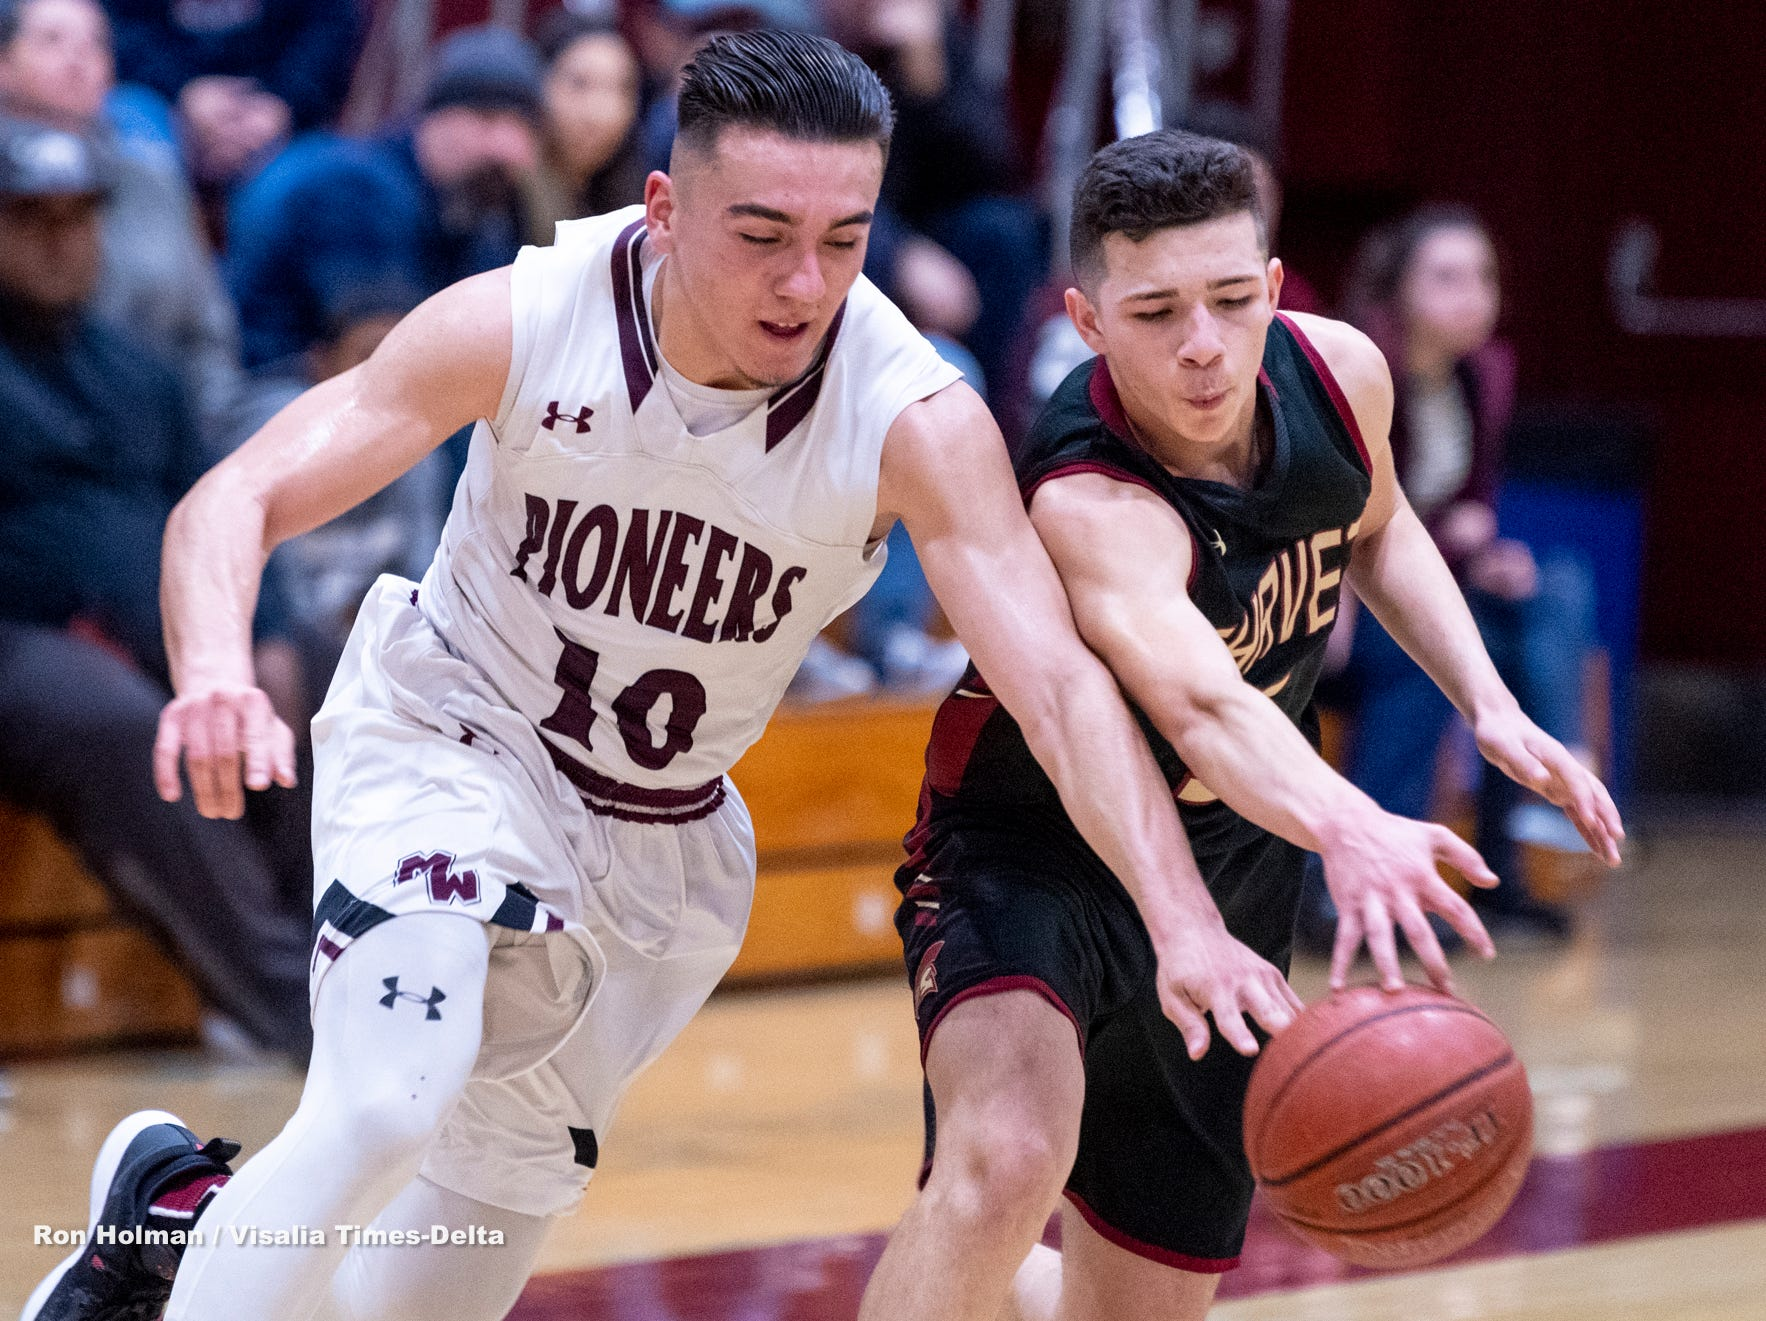 Mt. Whitney's Zack Reza, left, and Chavez's Adan Arredondo scramble for a loose ball in a Central Section Division III quarterfinal boys basketball game on Friday, February 15, 2019.